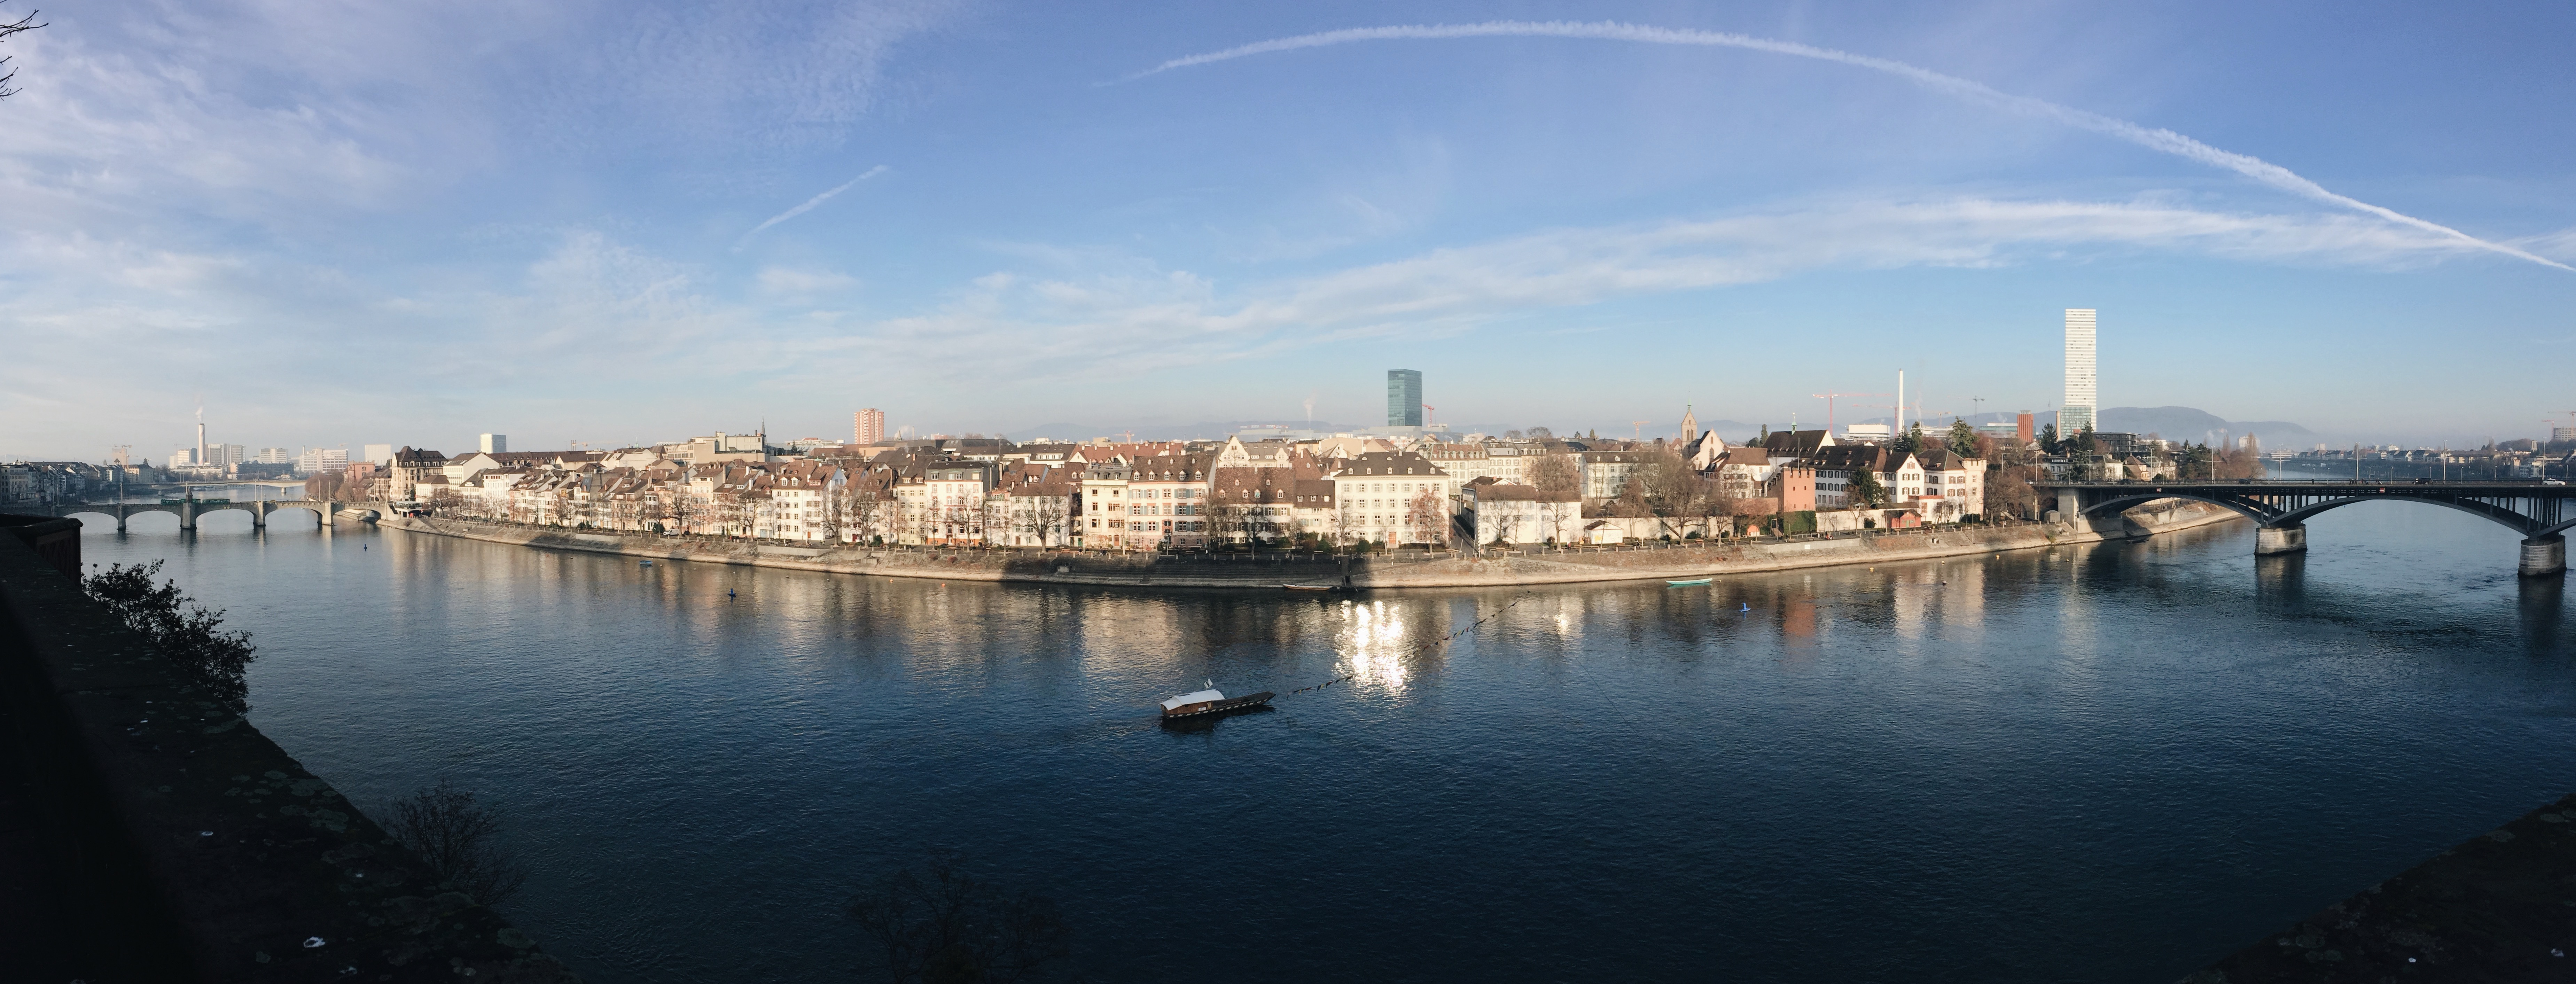 Basel, Switzerland panorama of the Rhine